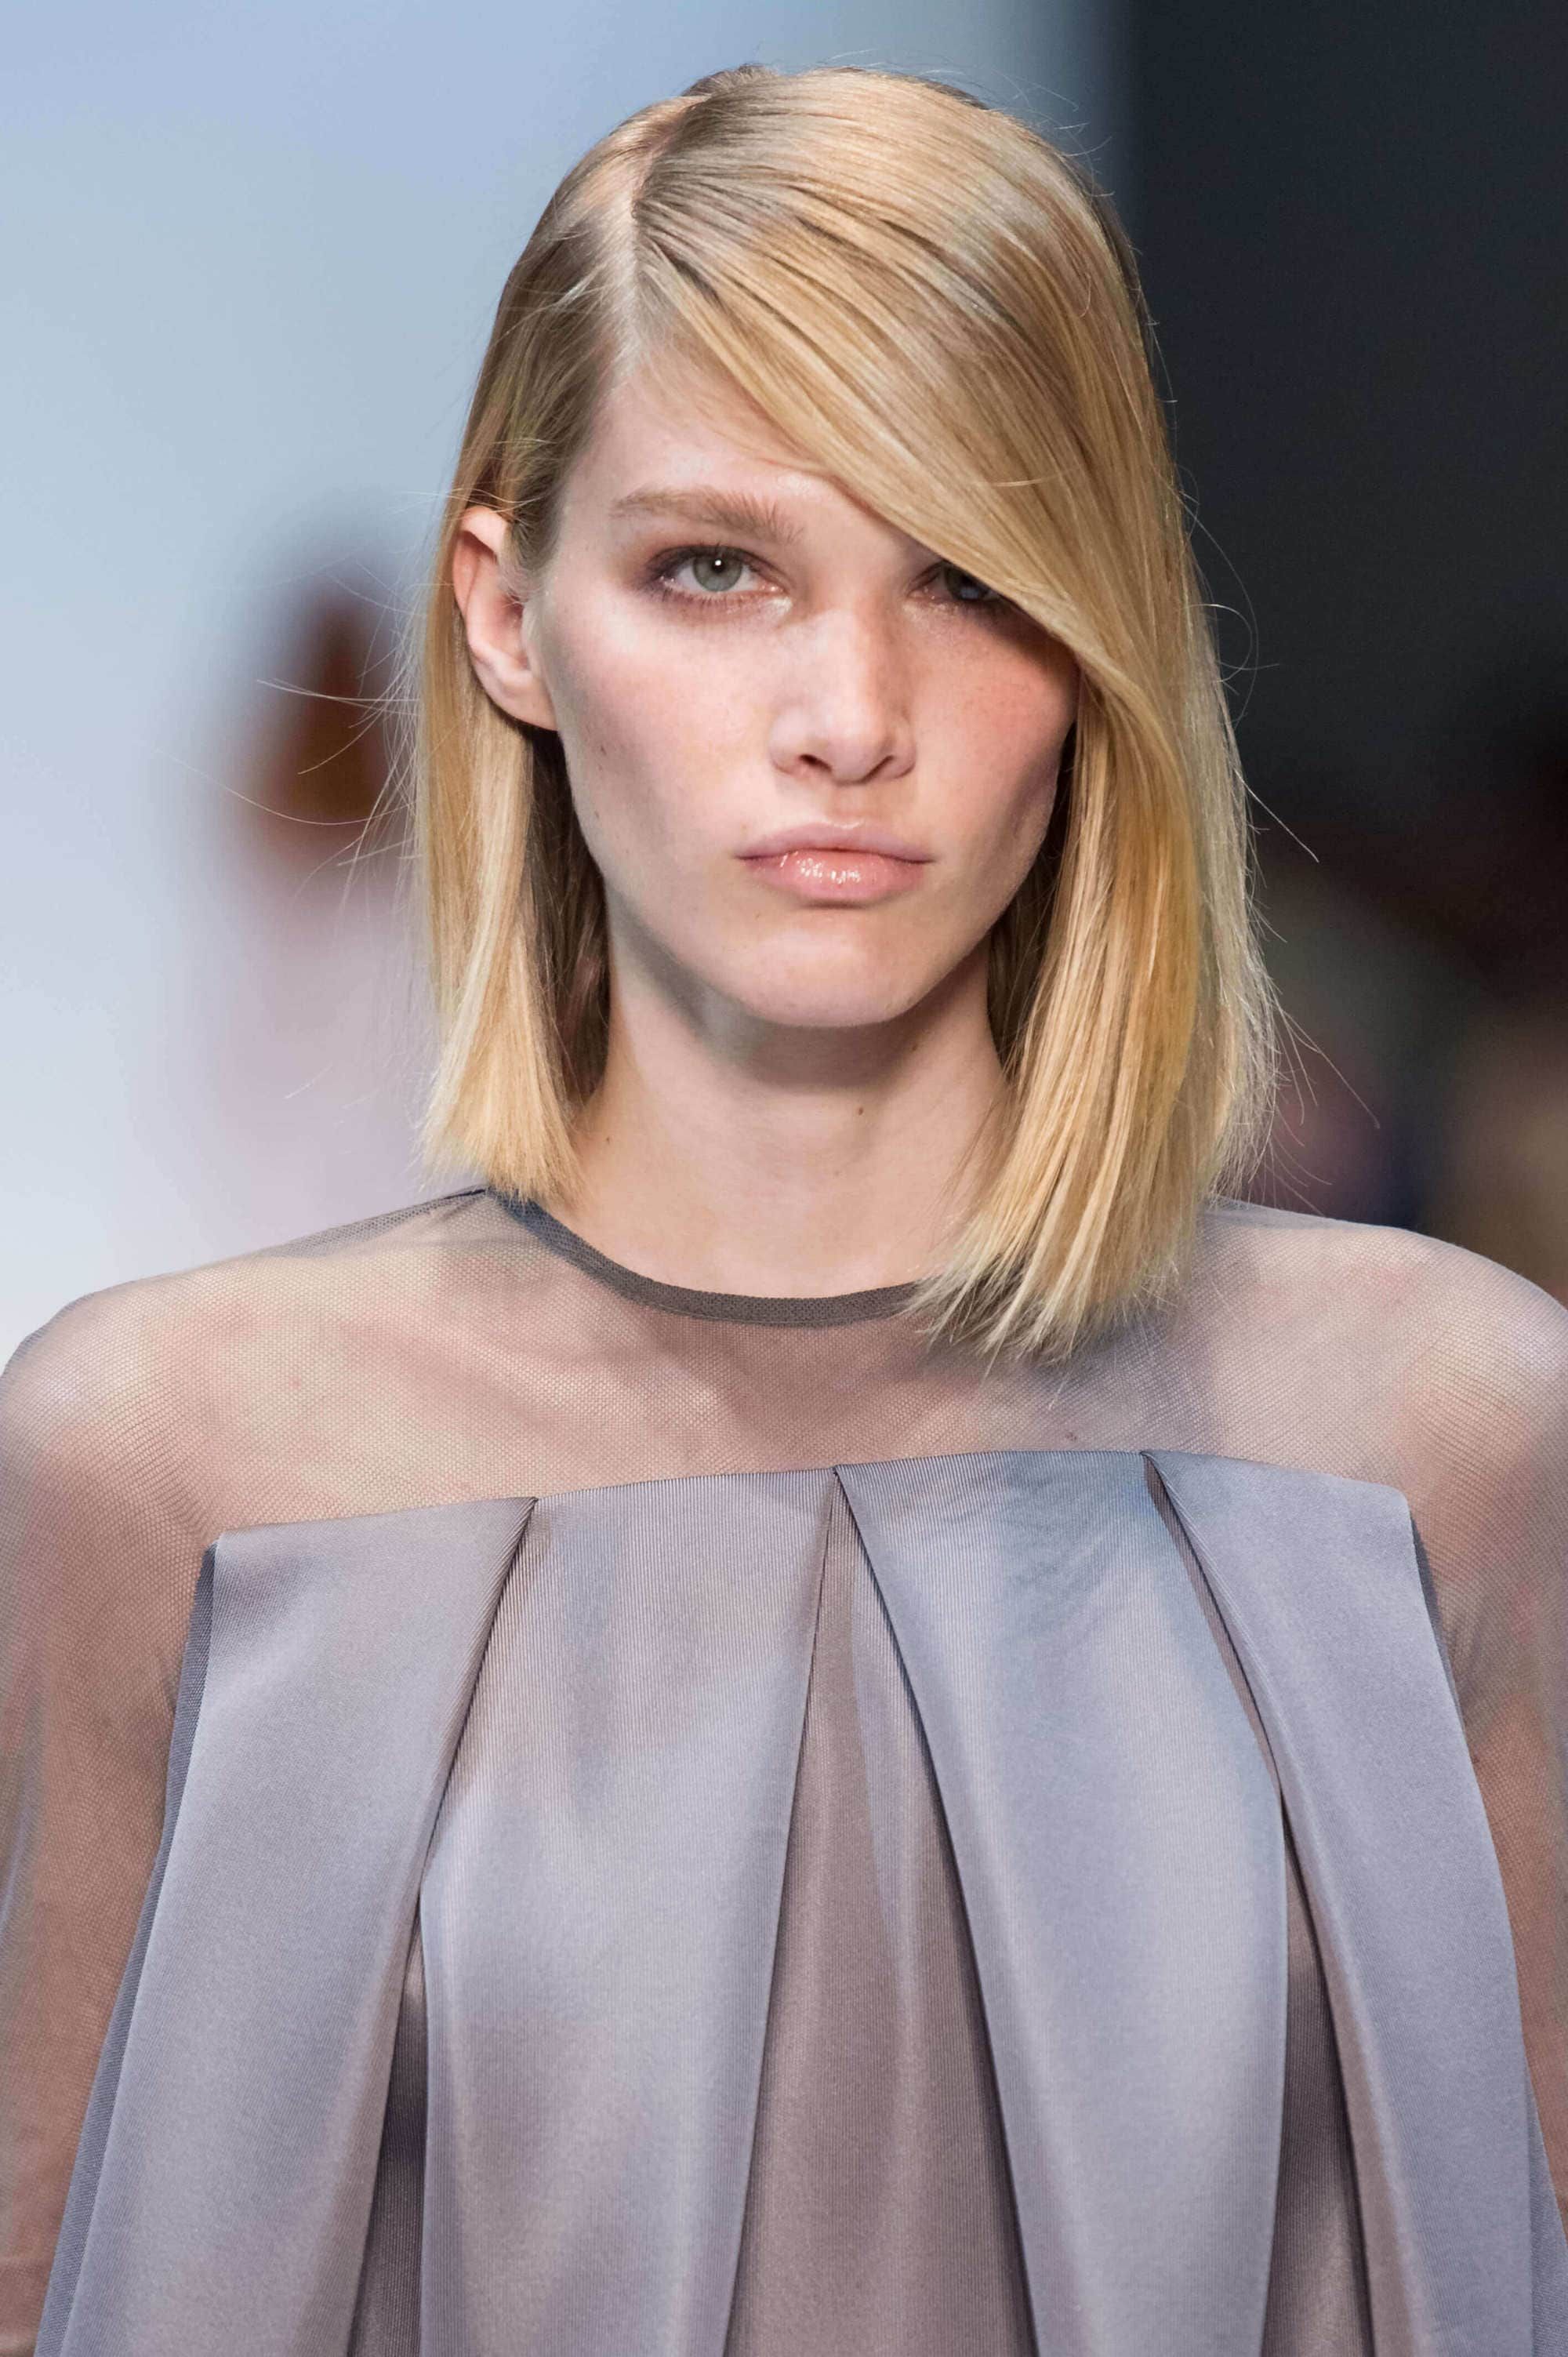 Asymmetrical haircut ideas how to wear this short haircut this season model with long asymmetrical haircut style on blonde hair solutioingenieria Images